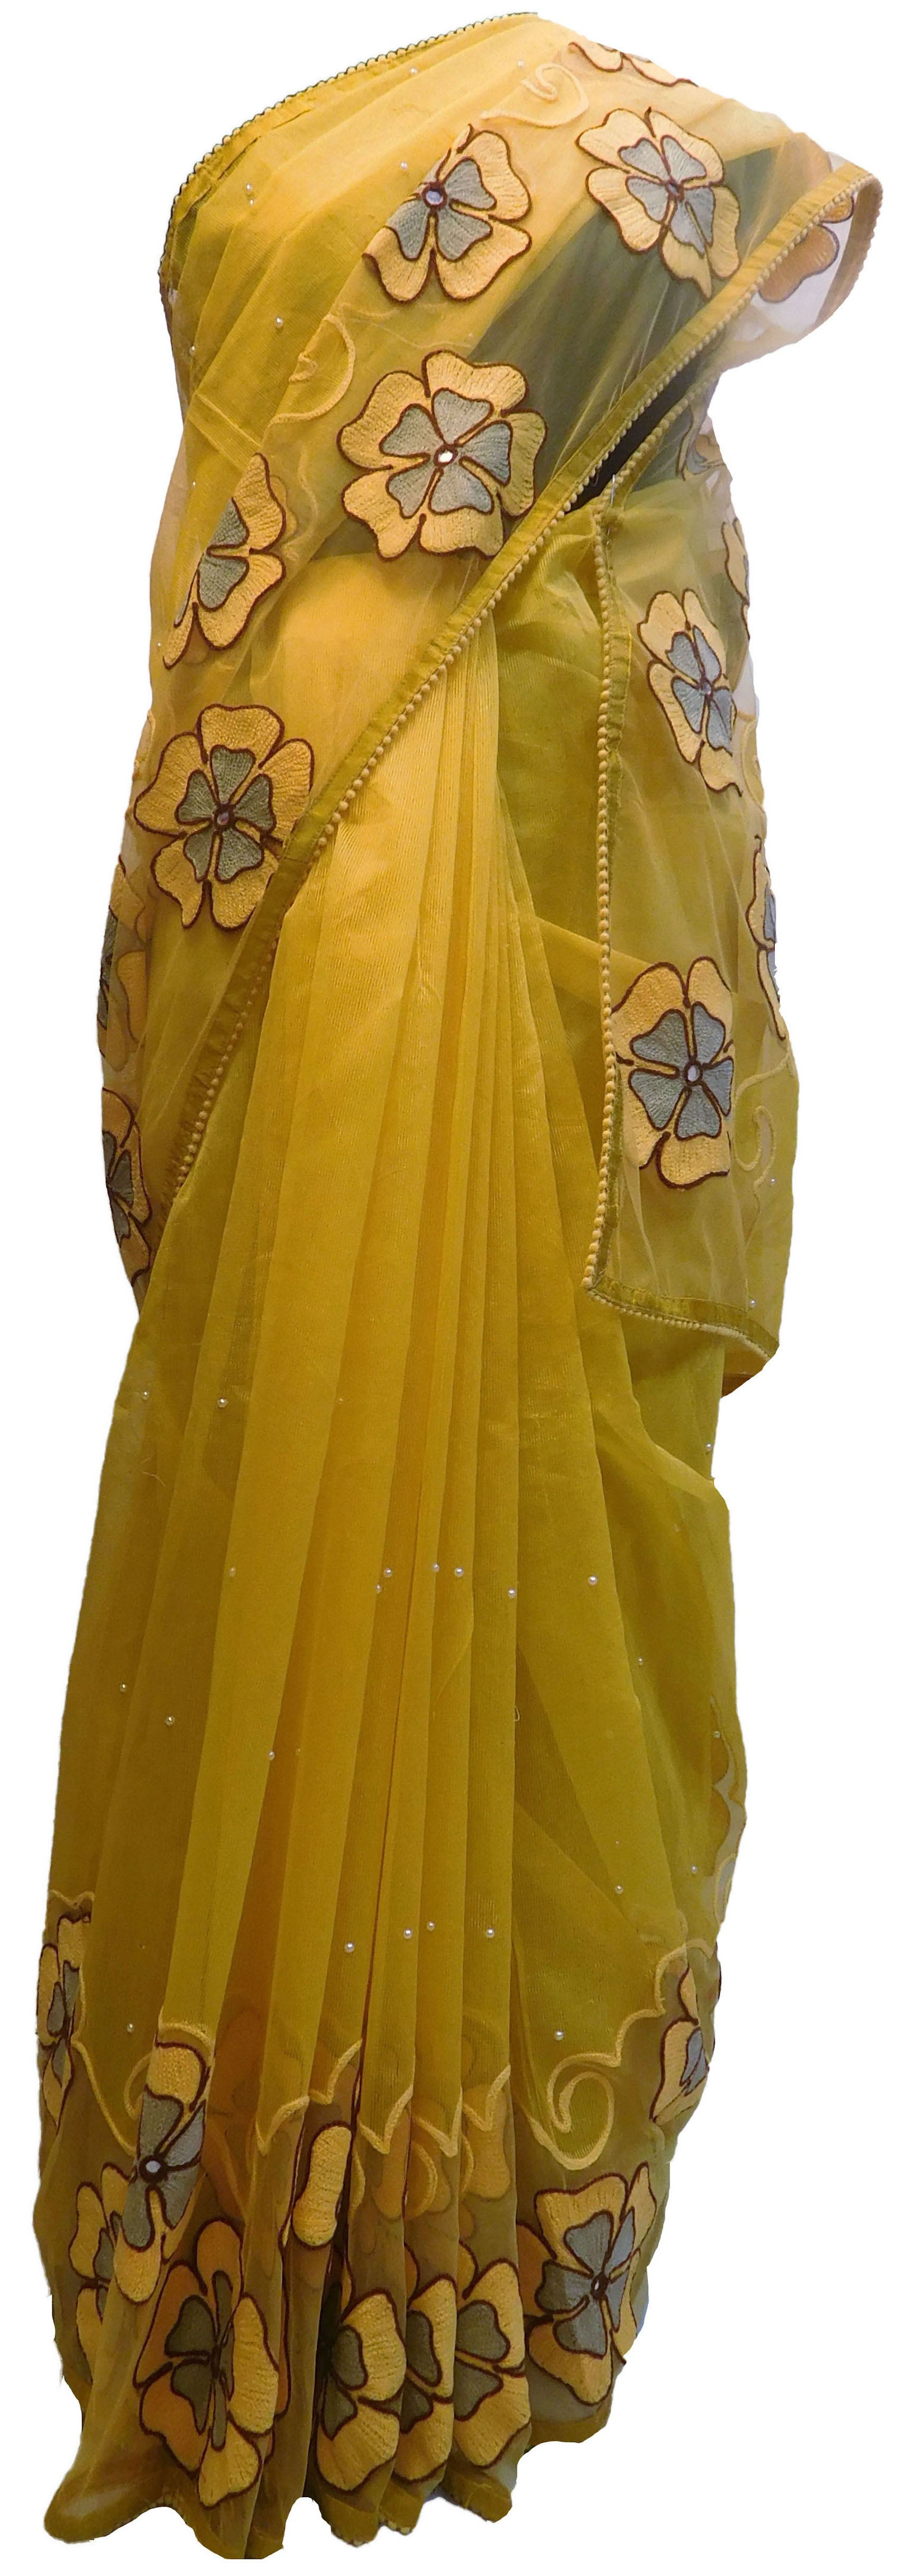 SMSAREE Yellow Designer Wedding Partywear Supernet (Cotton) Mirror Thread & Pearl Hand Embroidery Work Bridal Saree Sari With Blouse Piece E565